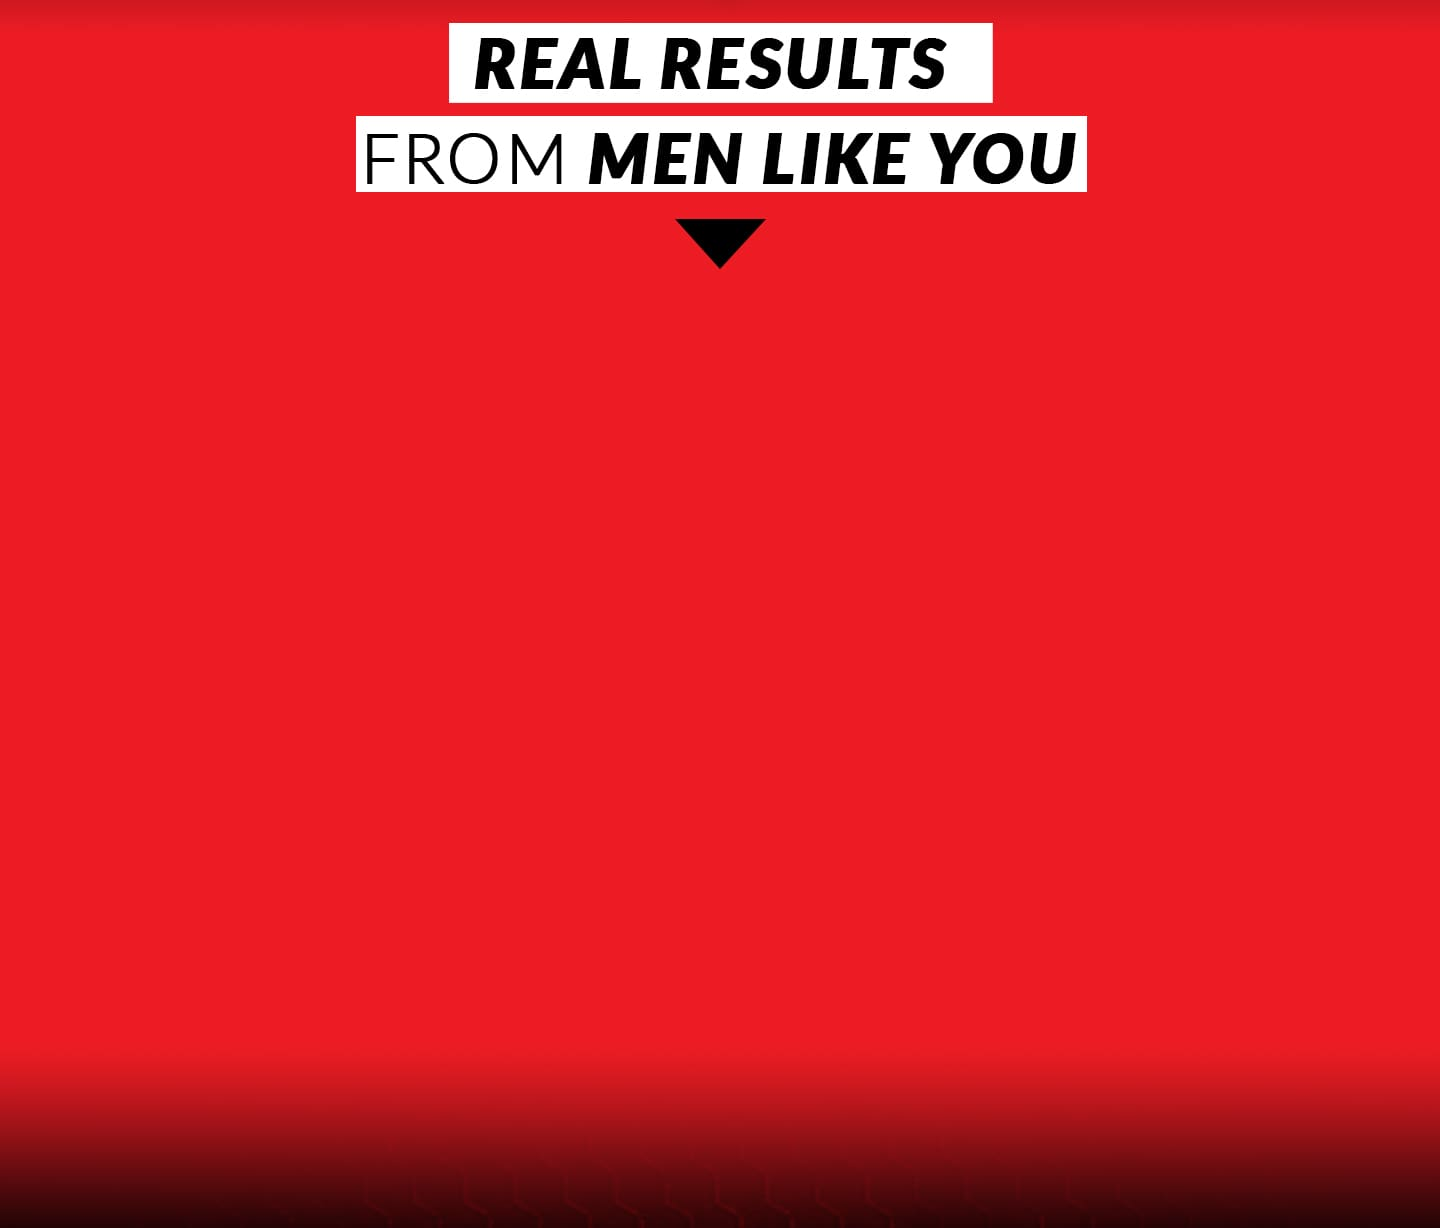 REAL RESULTS FROM MEN LIKE YOU